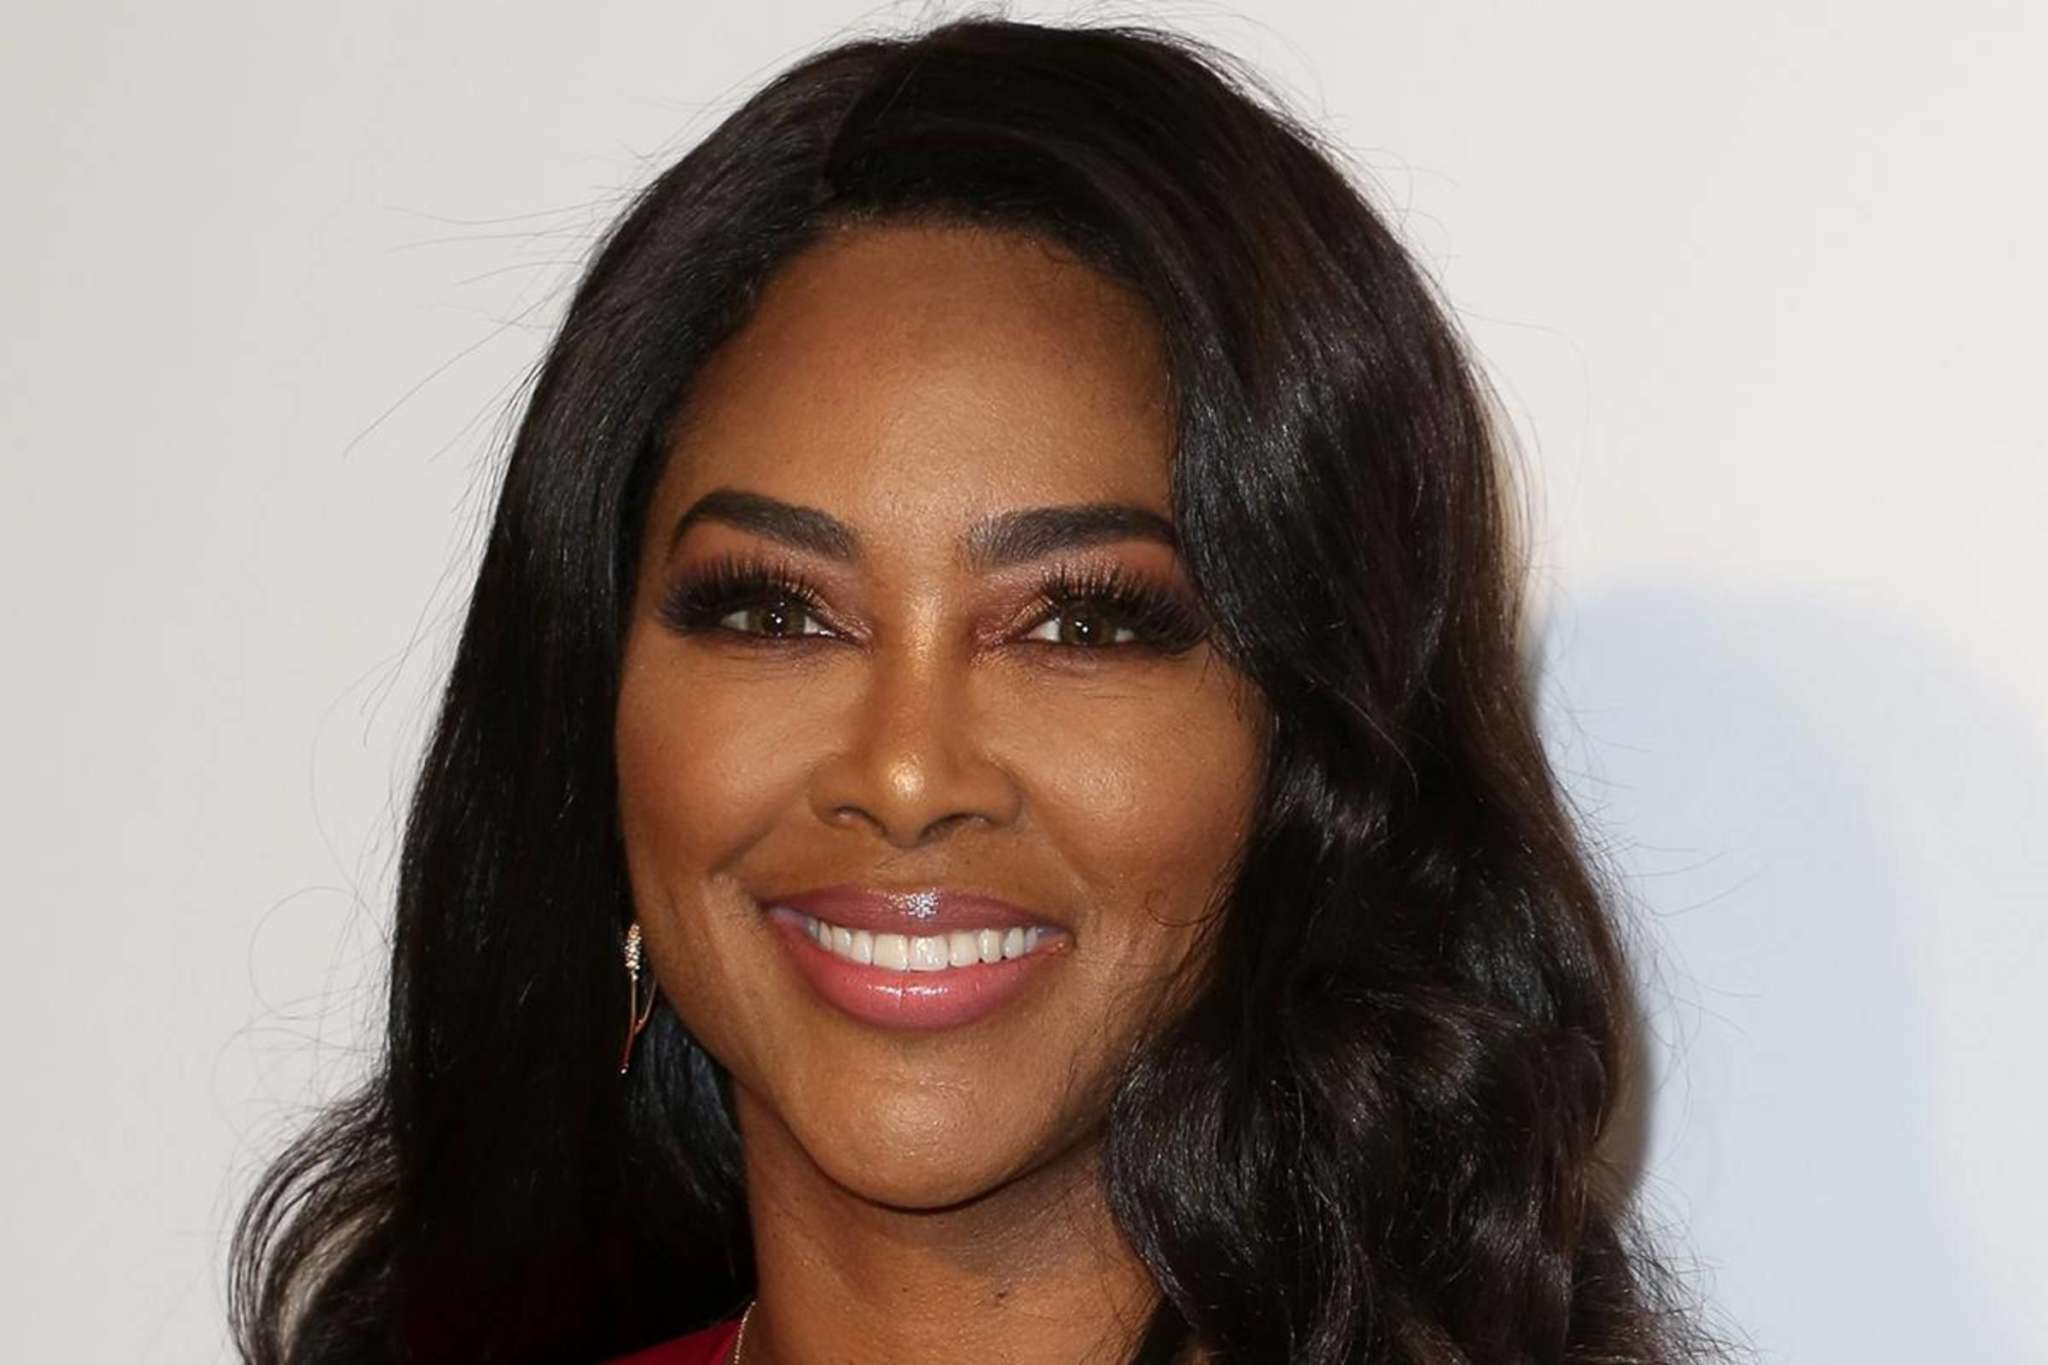 Kenya Moore's Daughter, Brooklyn Daly Meets A Lot Of Animals And Fans Cannot Have Enough Of Her - See The Video